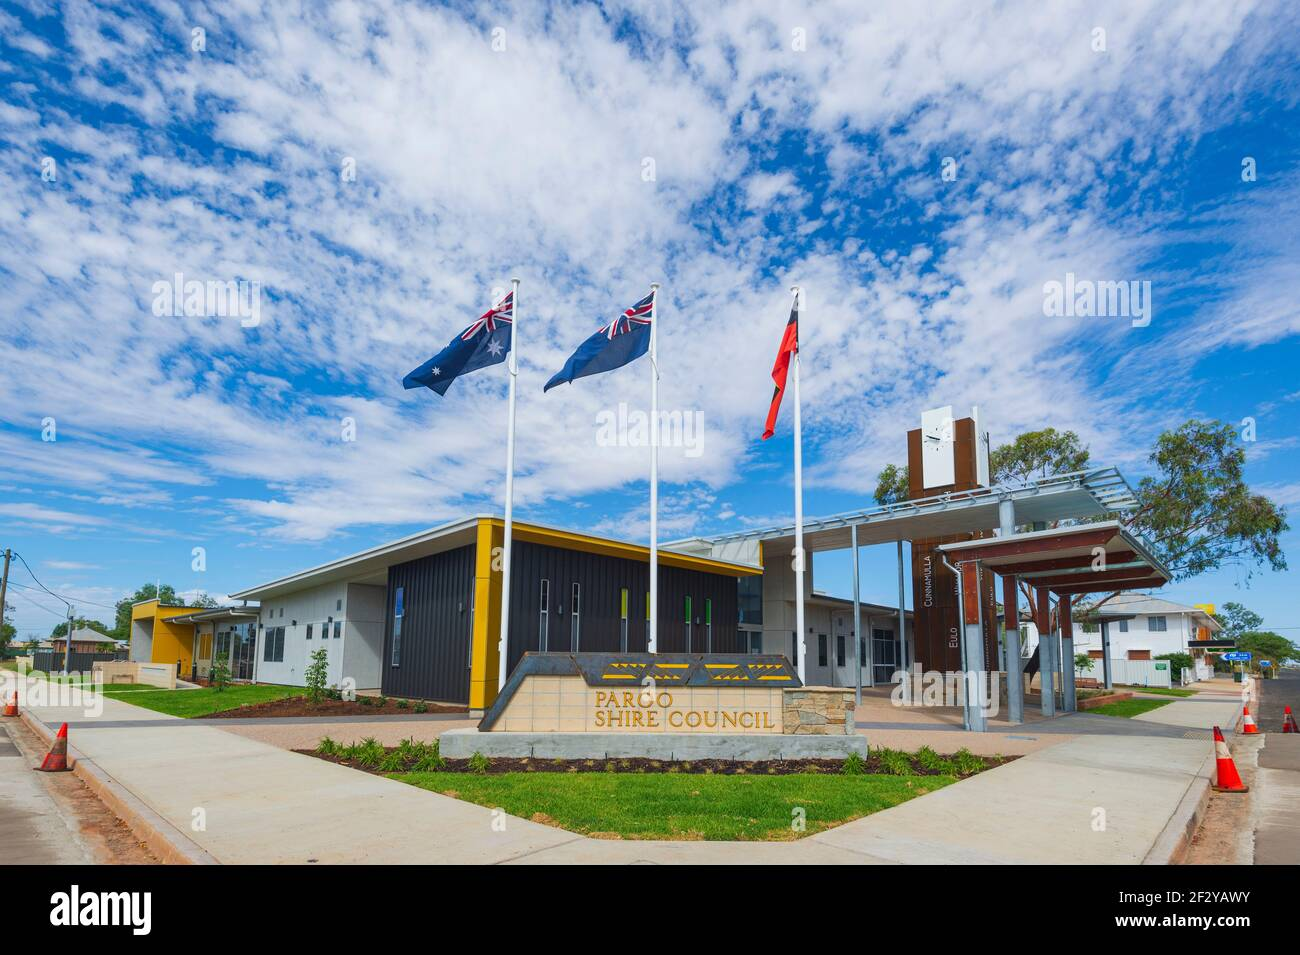 View of the Paroo Shire Council building in Cunnamulla, Cunnamulla, Queensland, QLD, Australia Stock Photo